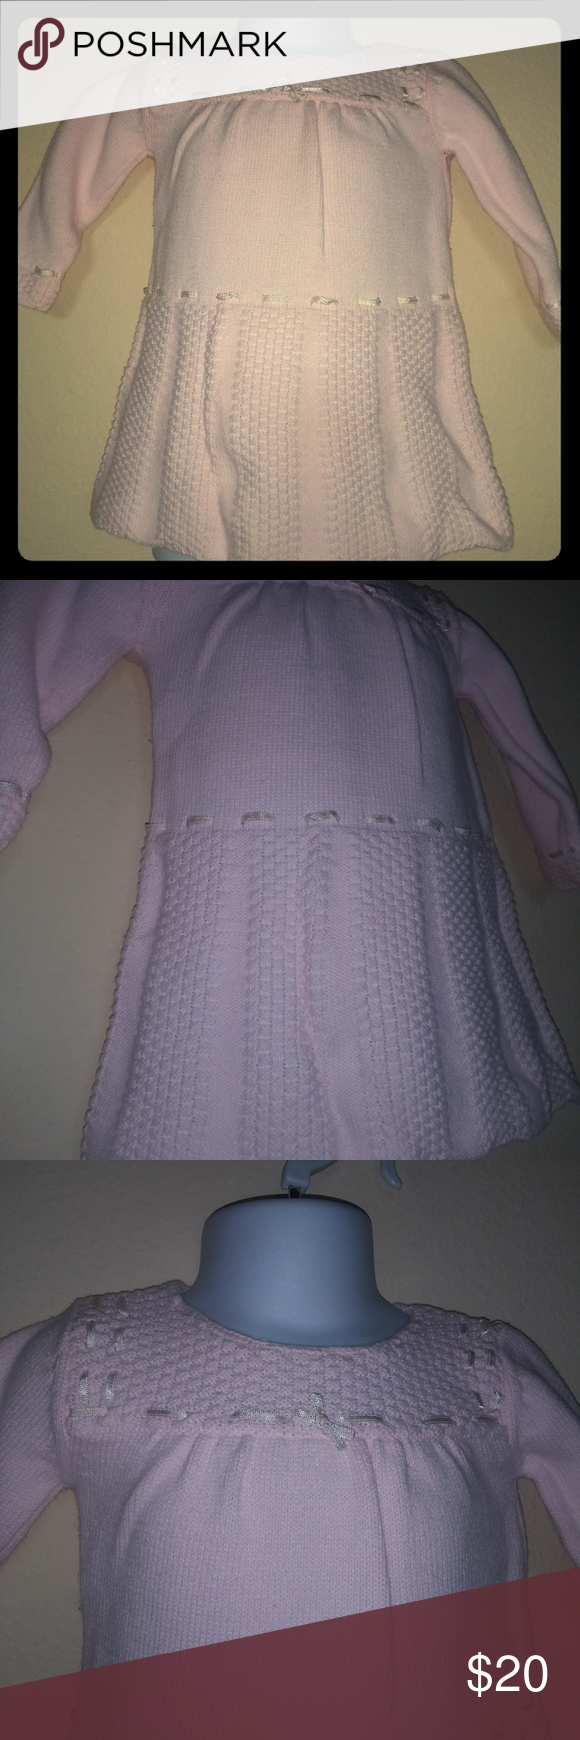 dbb64a6c9a53 Piper and Posie 3 6 mos pink sweater dress in 2018